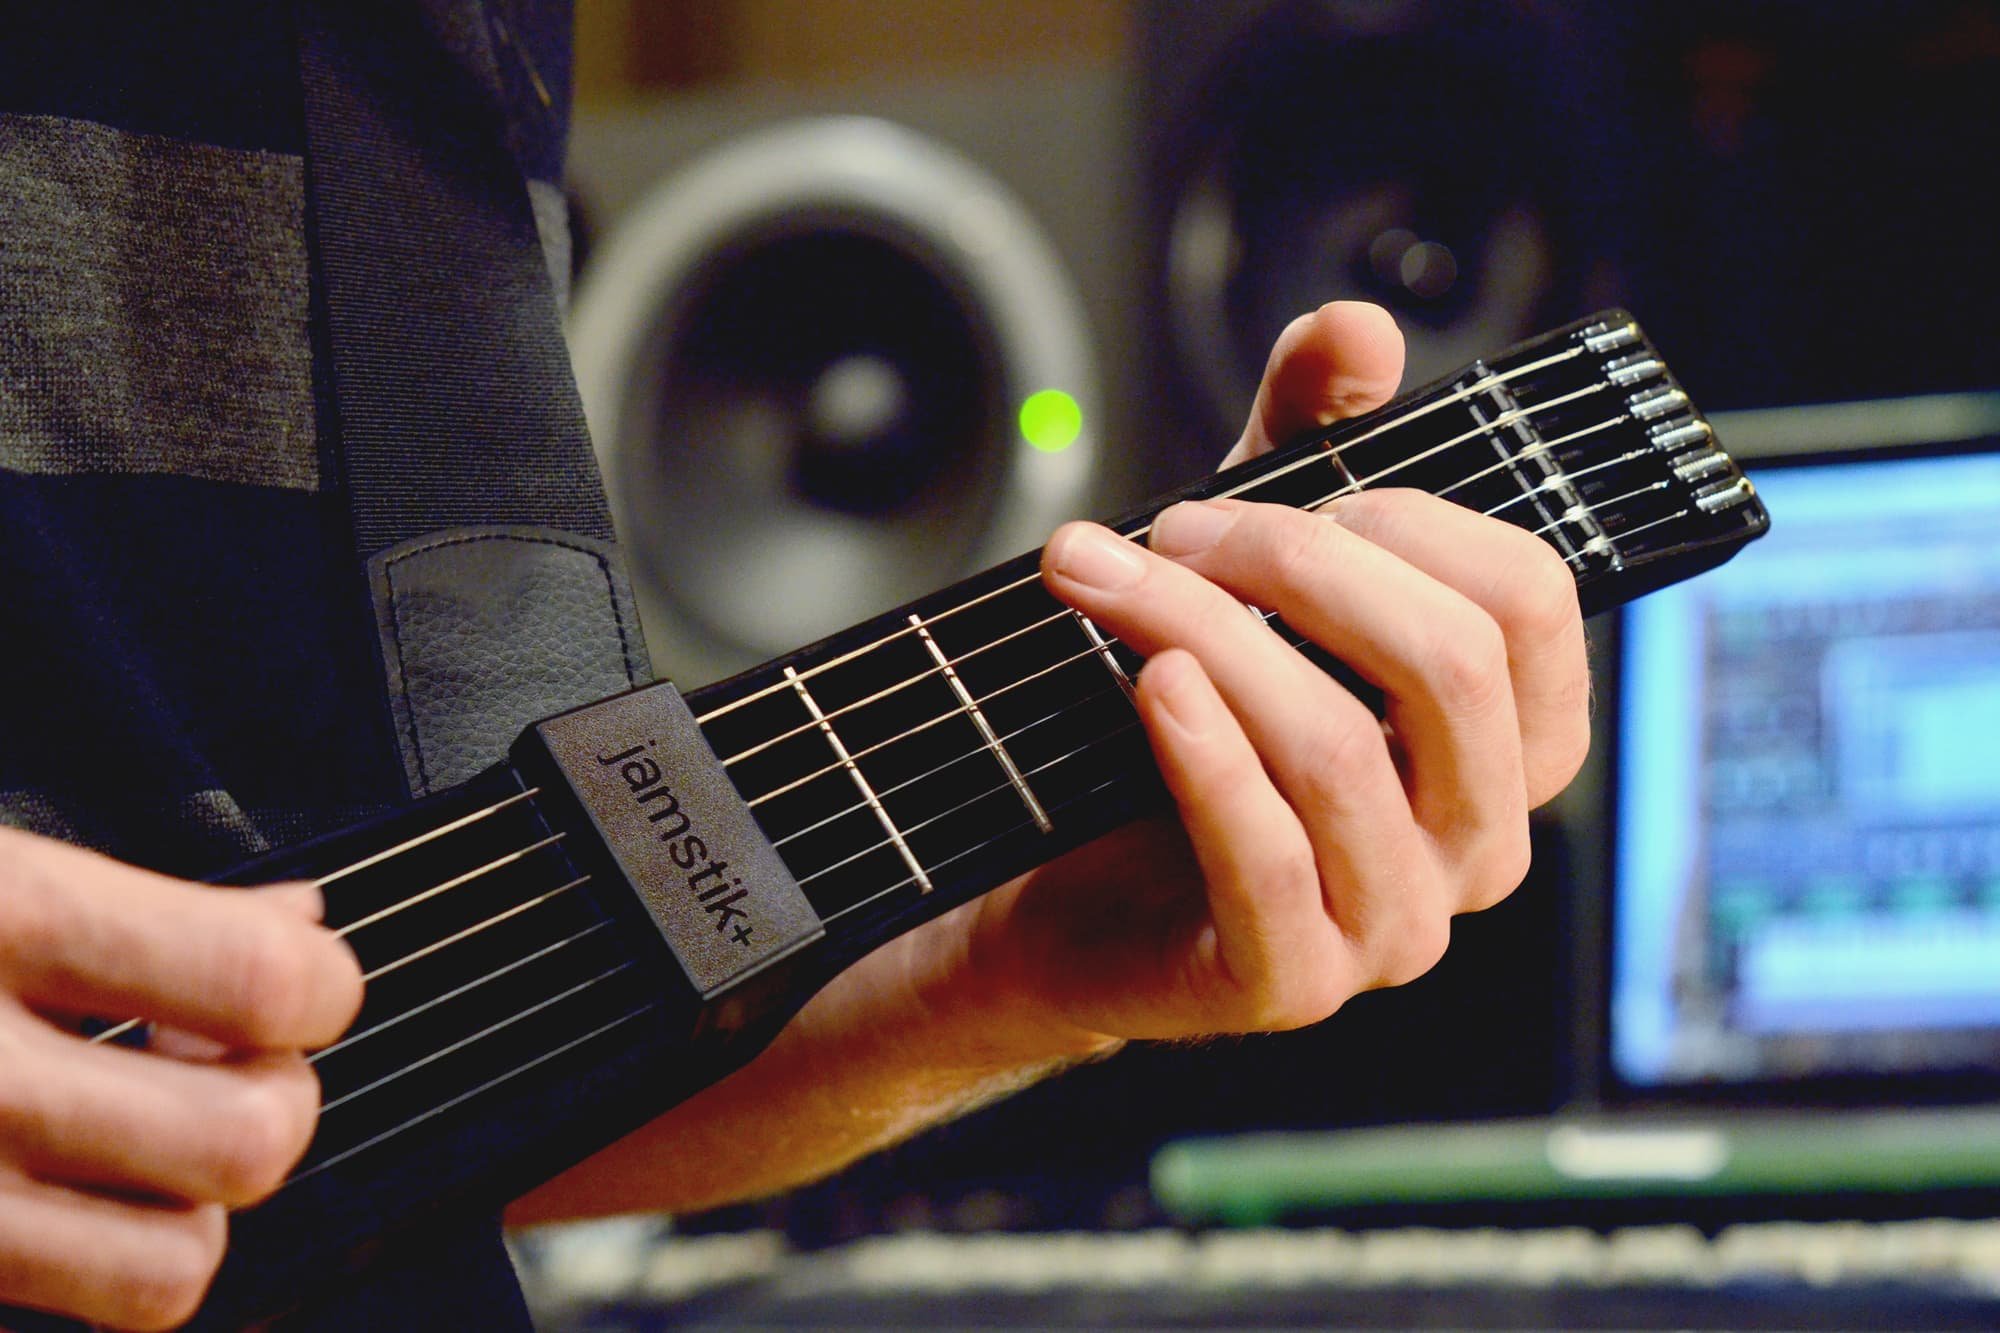 Smart Guitar Strikes A New Chord